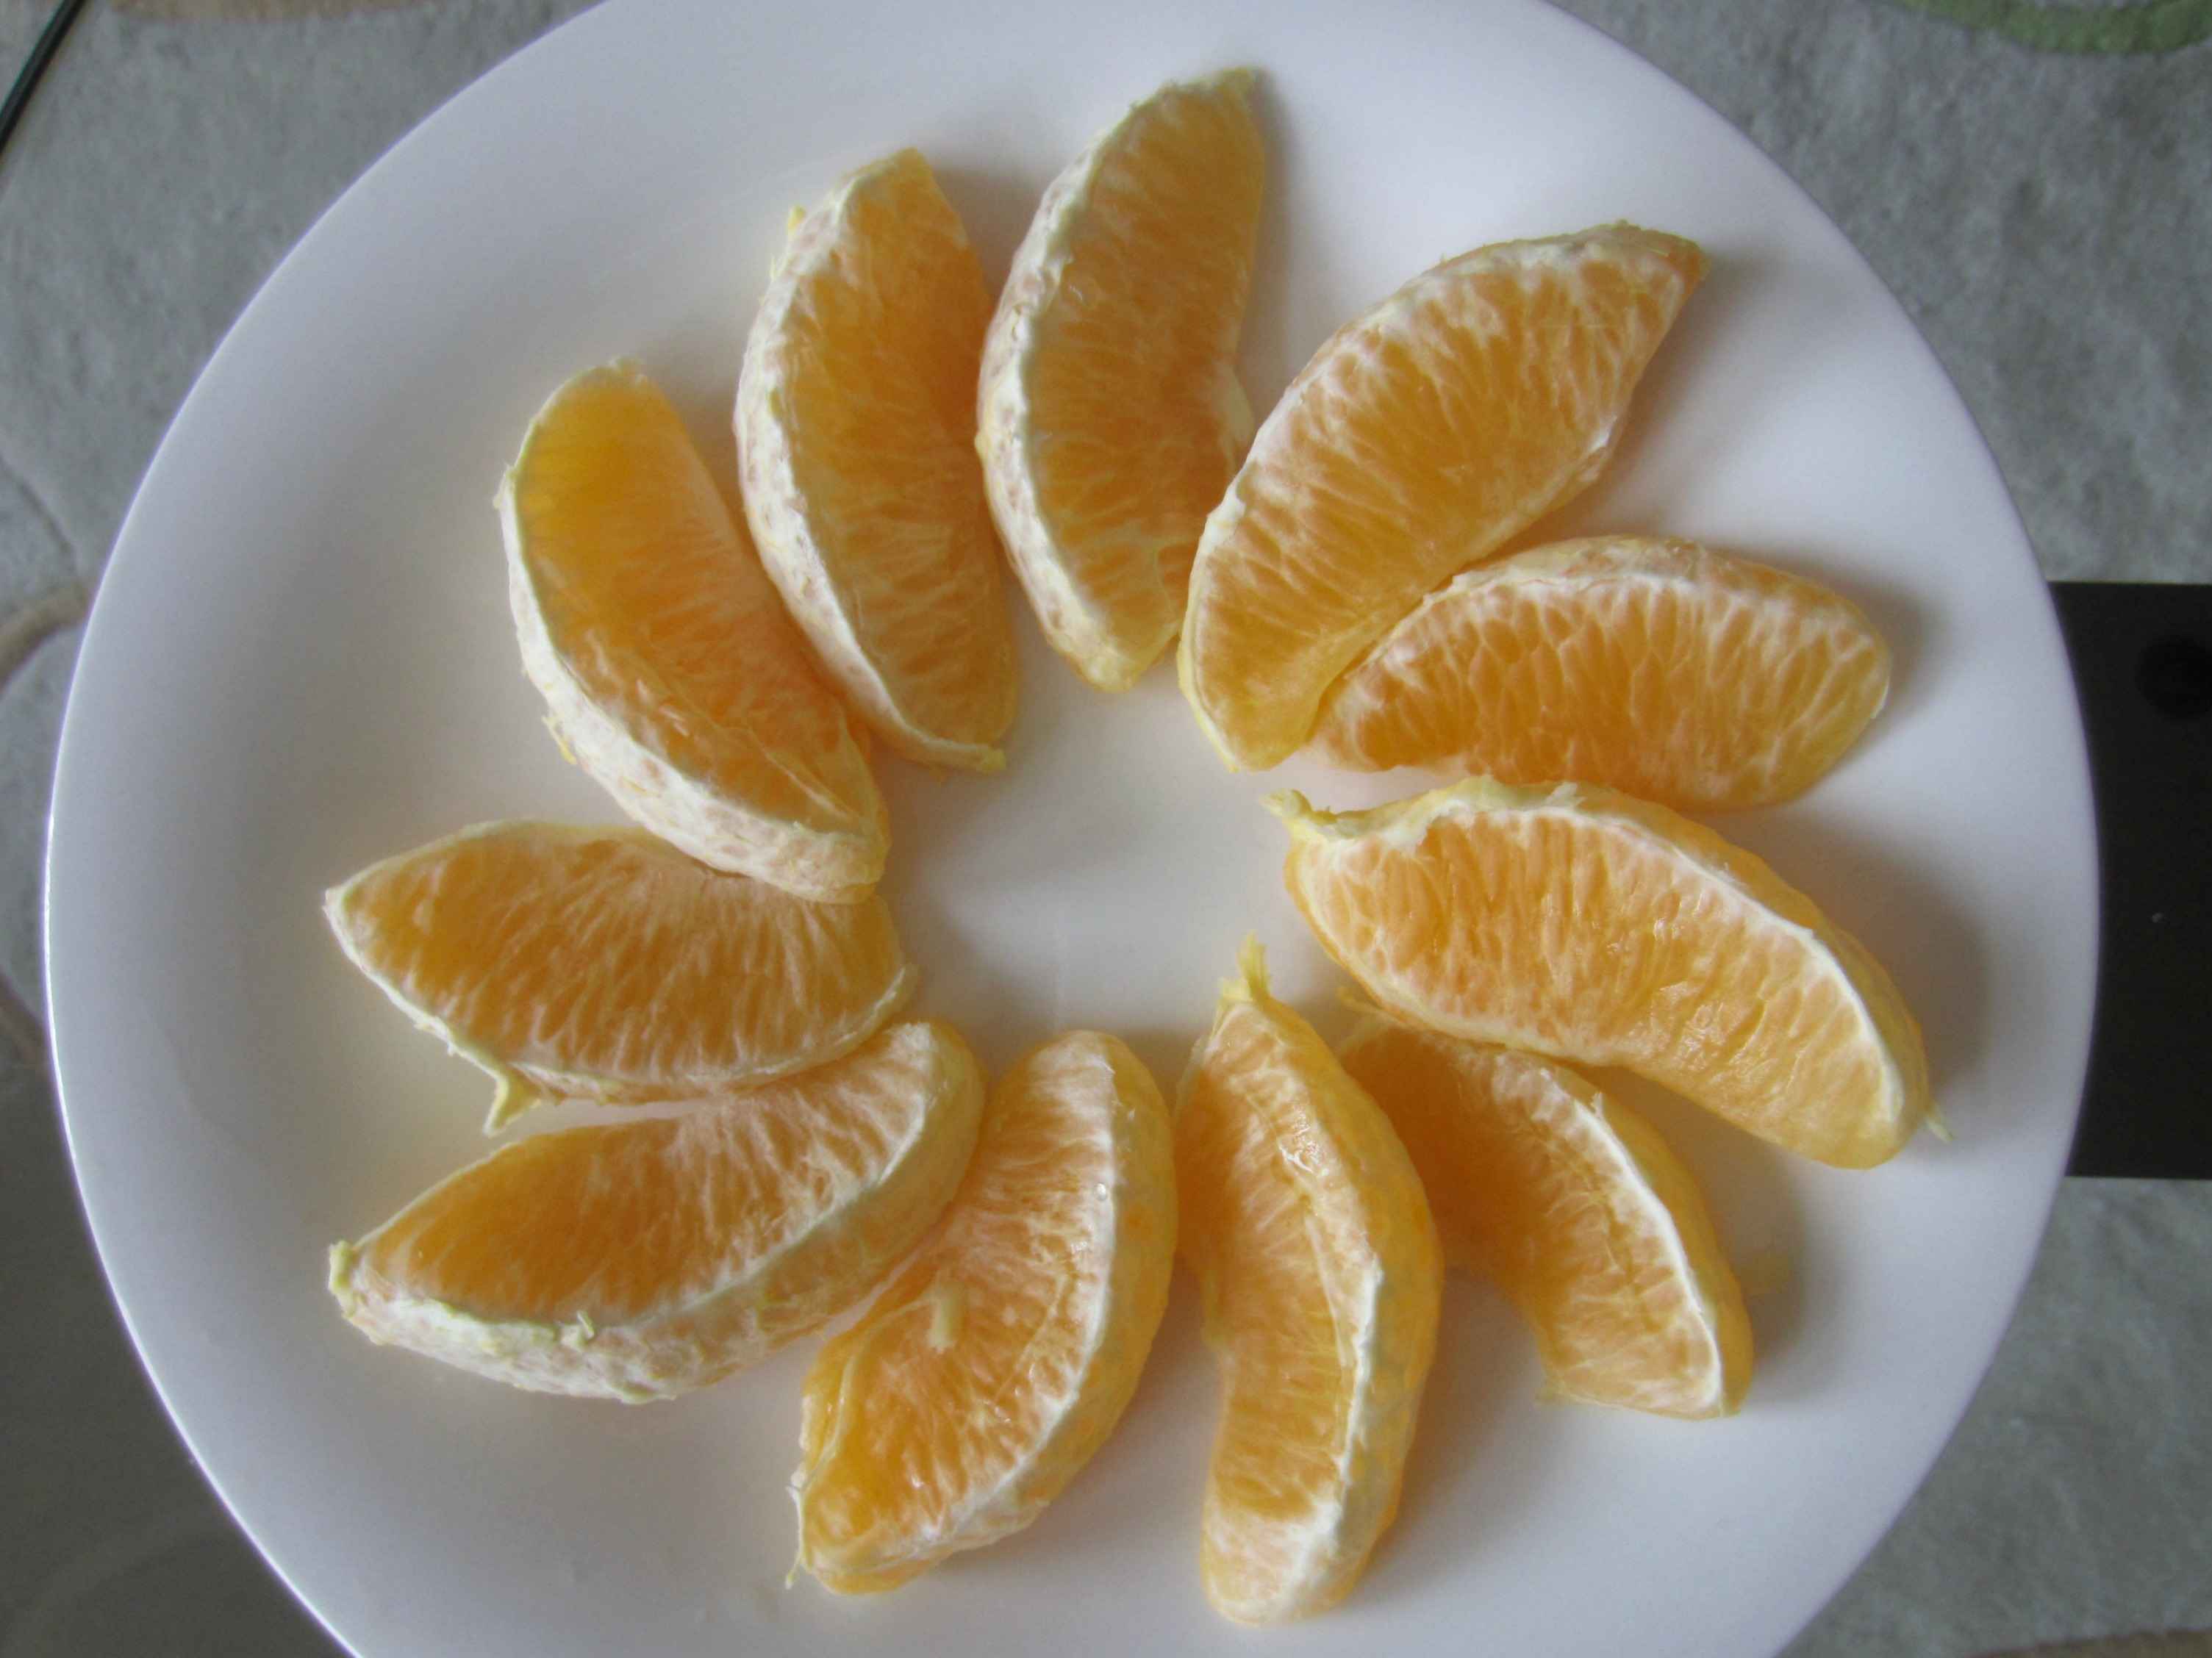 navel orange - healthy snack